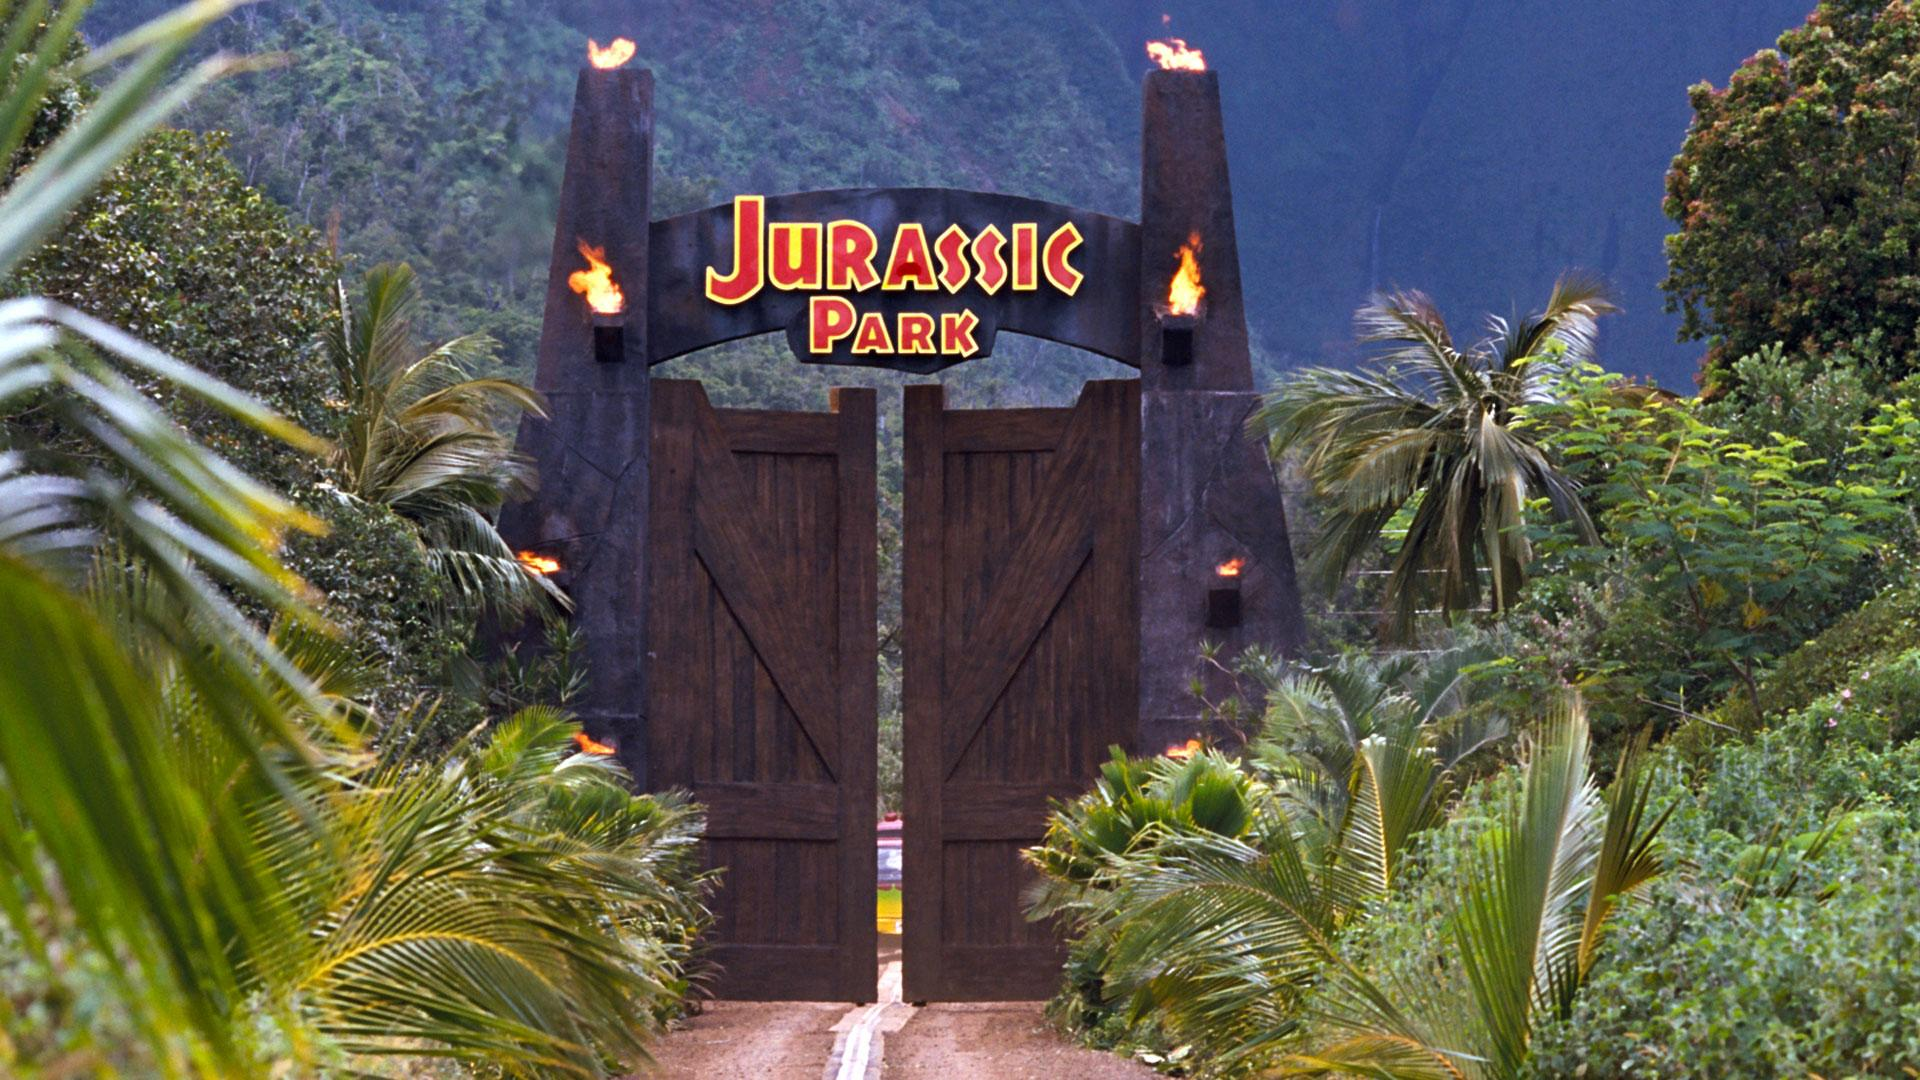 'Jurassic Park' to Air on NBCU Nets Ahead of 'Jurassic World' Release